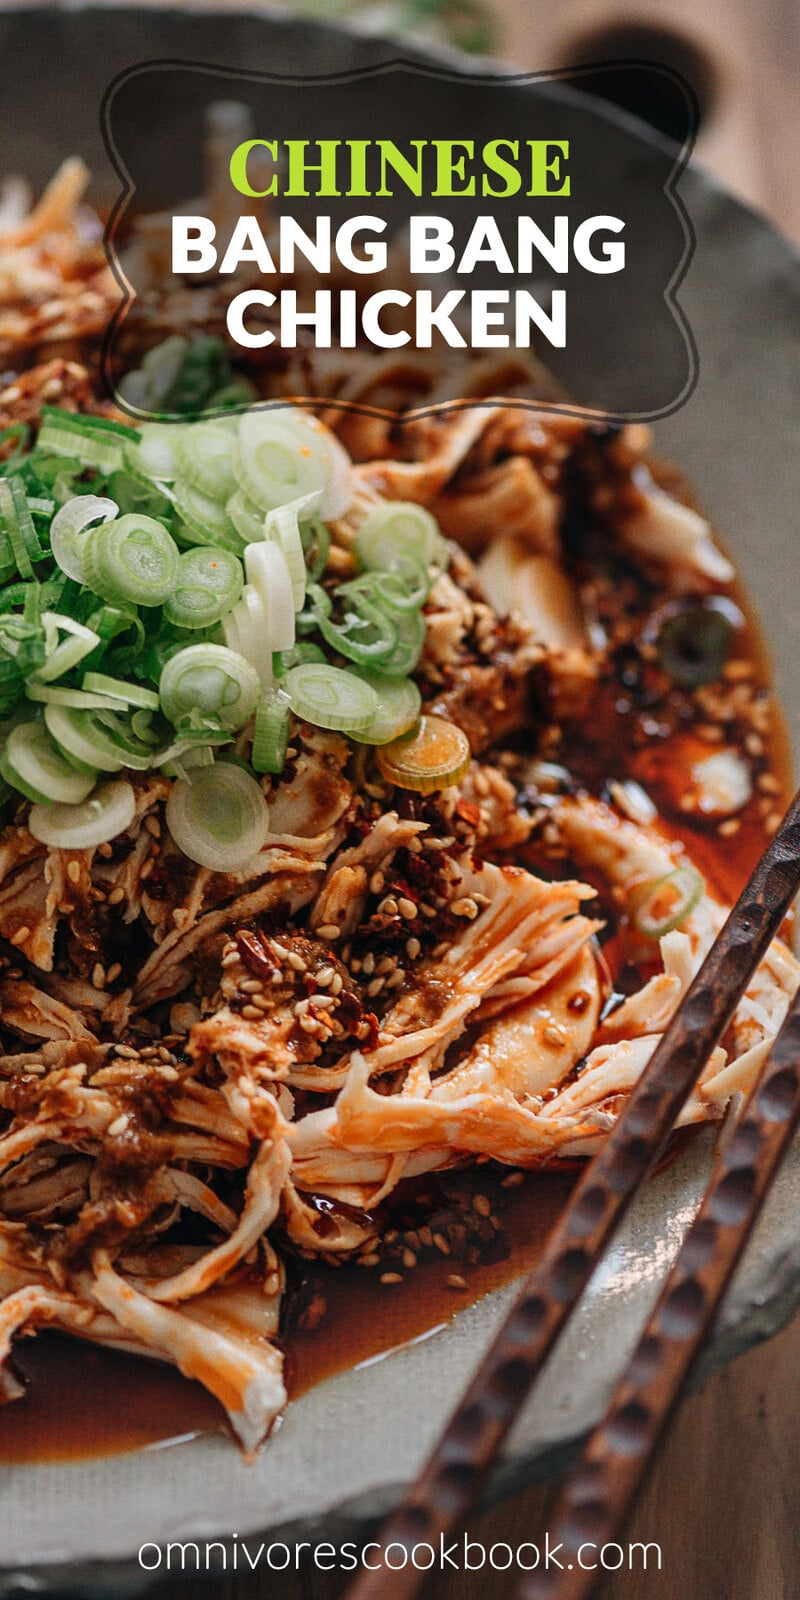 Chinese Bang Bang Chicken (棒棒鸡) - The real-deal Sichuan version of Bang Bang chicken made with juicy tender shredded chicken breast covered with a savory, nutty, spicy sauce with a hint of tangy and sweet notes. Originally a traditional Chinese appetizer, make it ahead and serve it at your next movie night or game day party. Mind blow guaranteed. {Gluten-Free Adaptable}